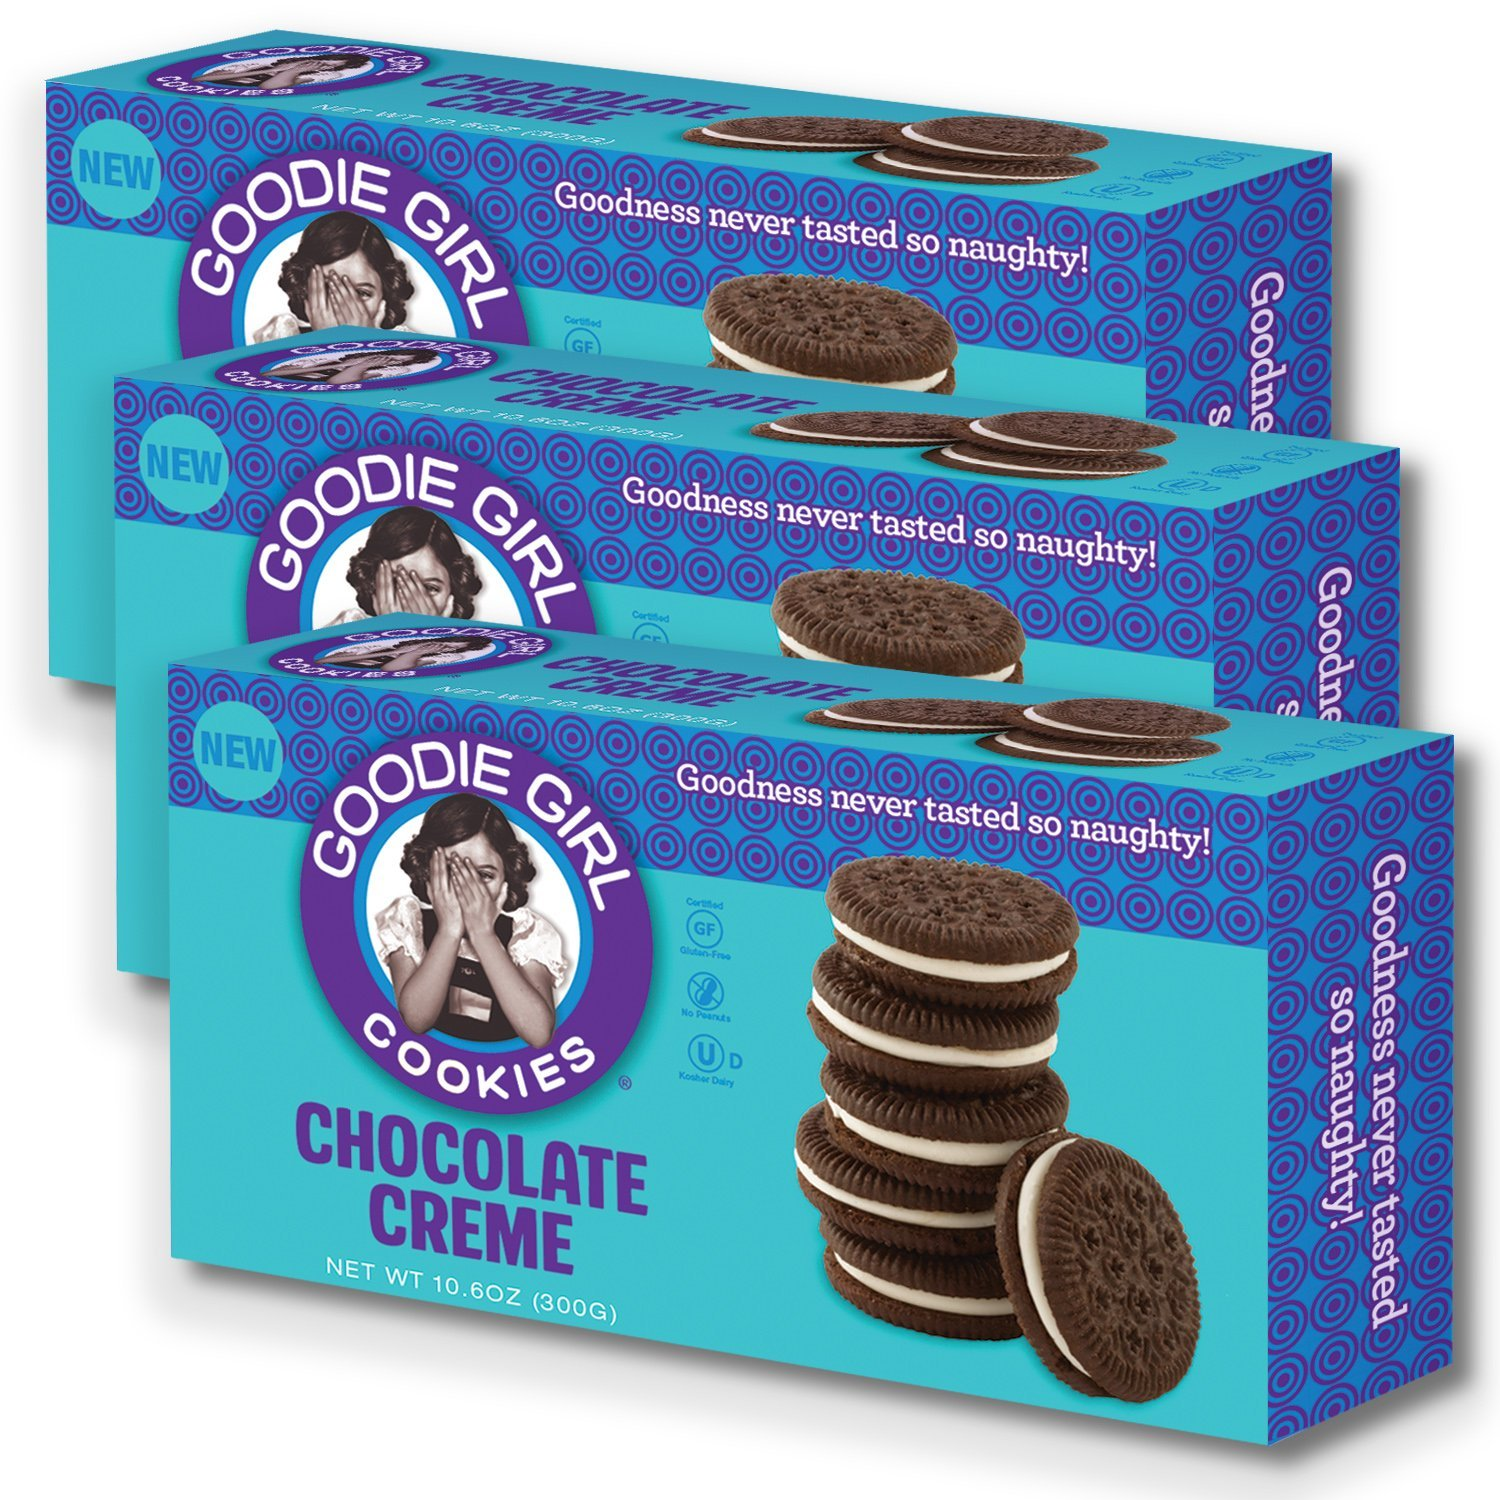 Amazon.com: Goodie Girl Cookies, Chocolate Creme Sandwich Gluten ...